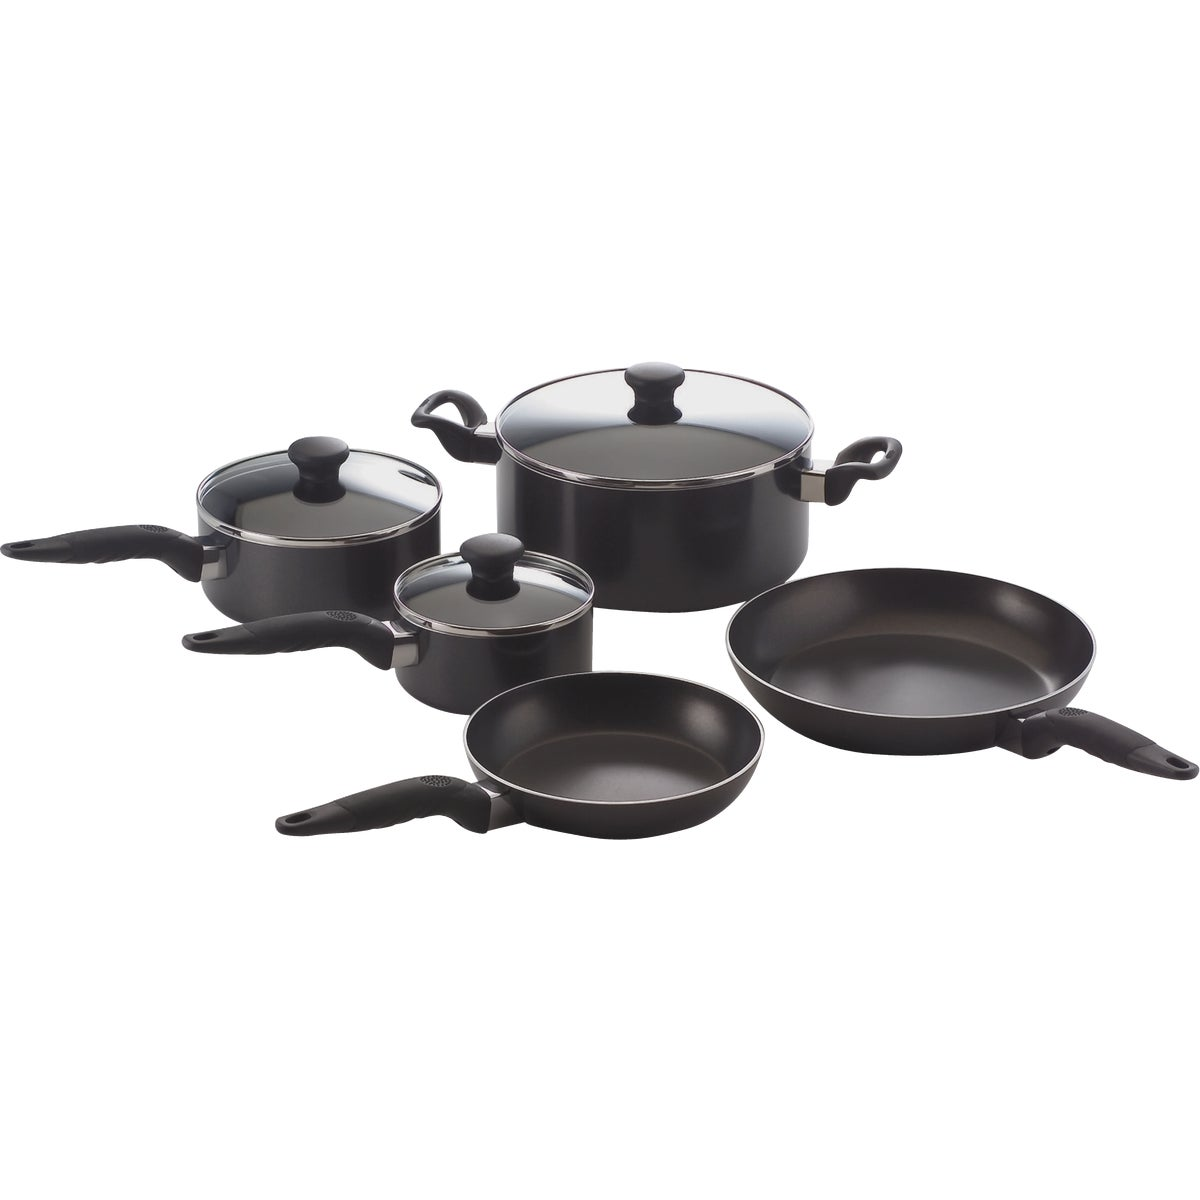 10PC GET A GRIP COOKWARE - A797SA84 by T Fal Wearever